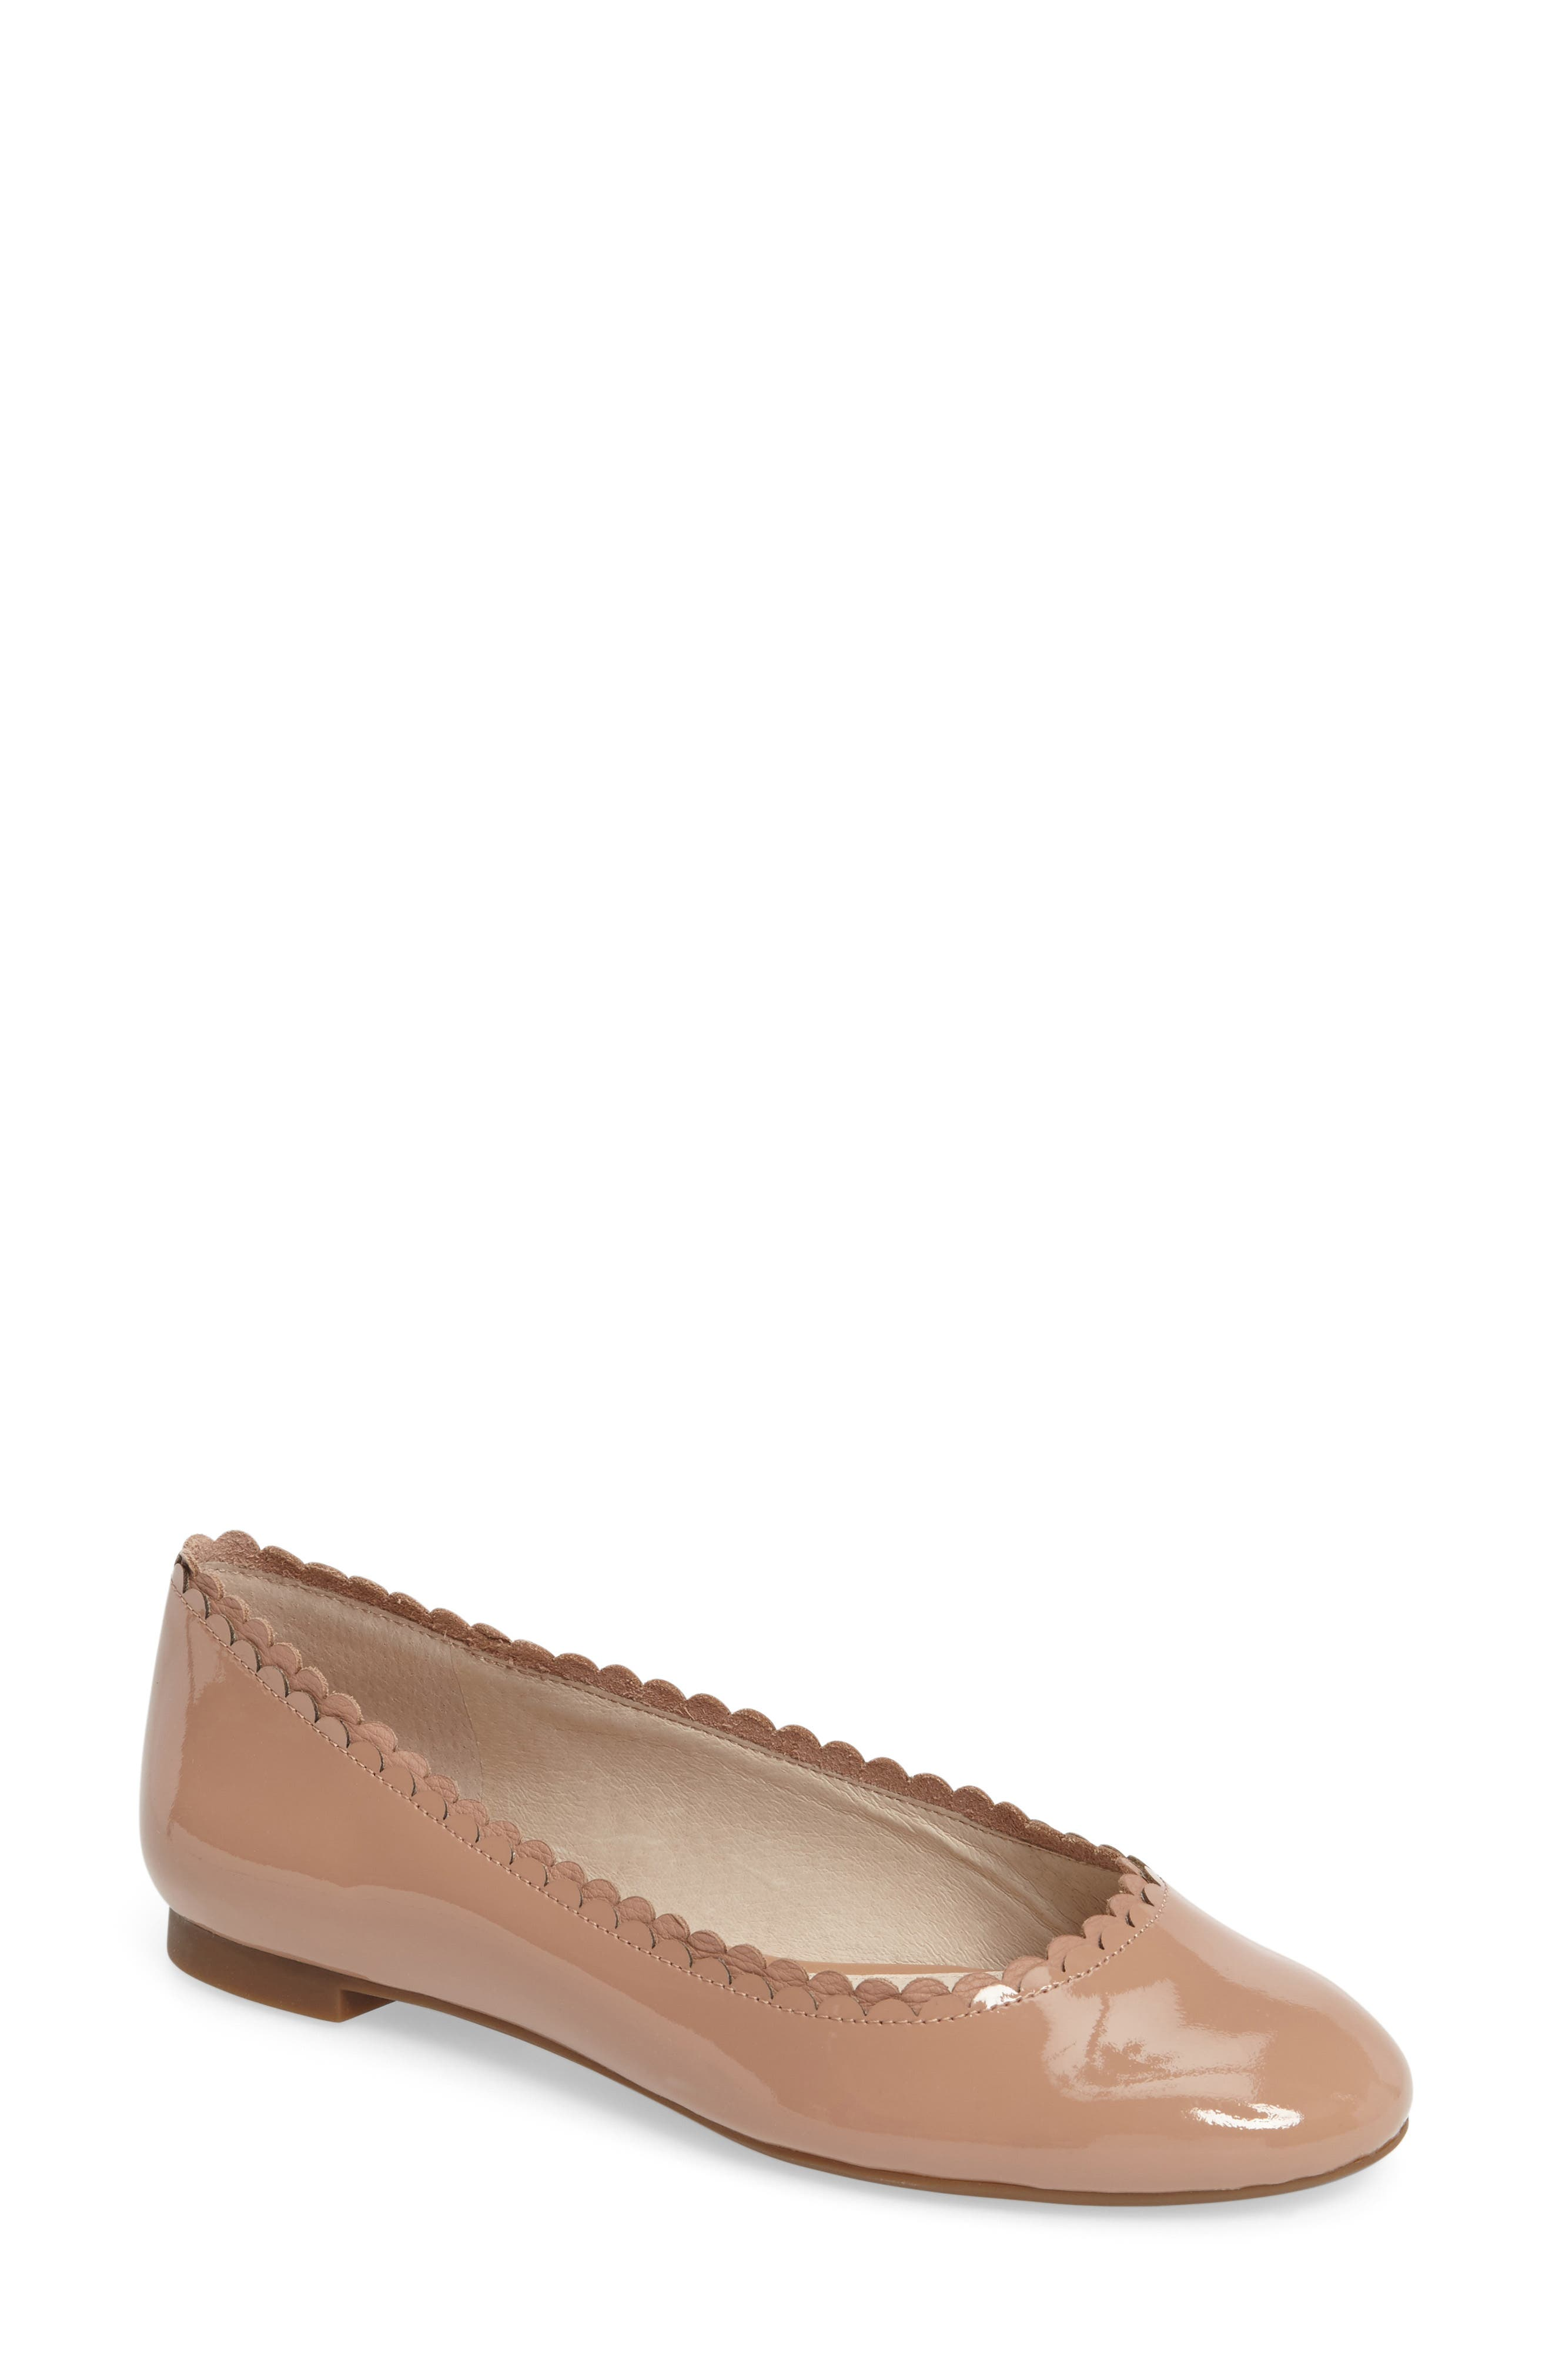 Louise et Cie Caynlee Ballet Flat (Women) (Nordstrom Exclusive)